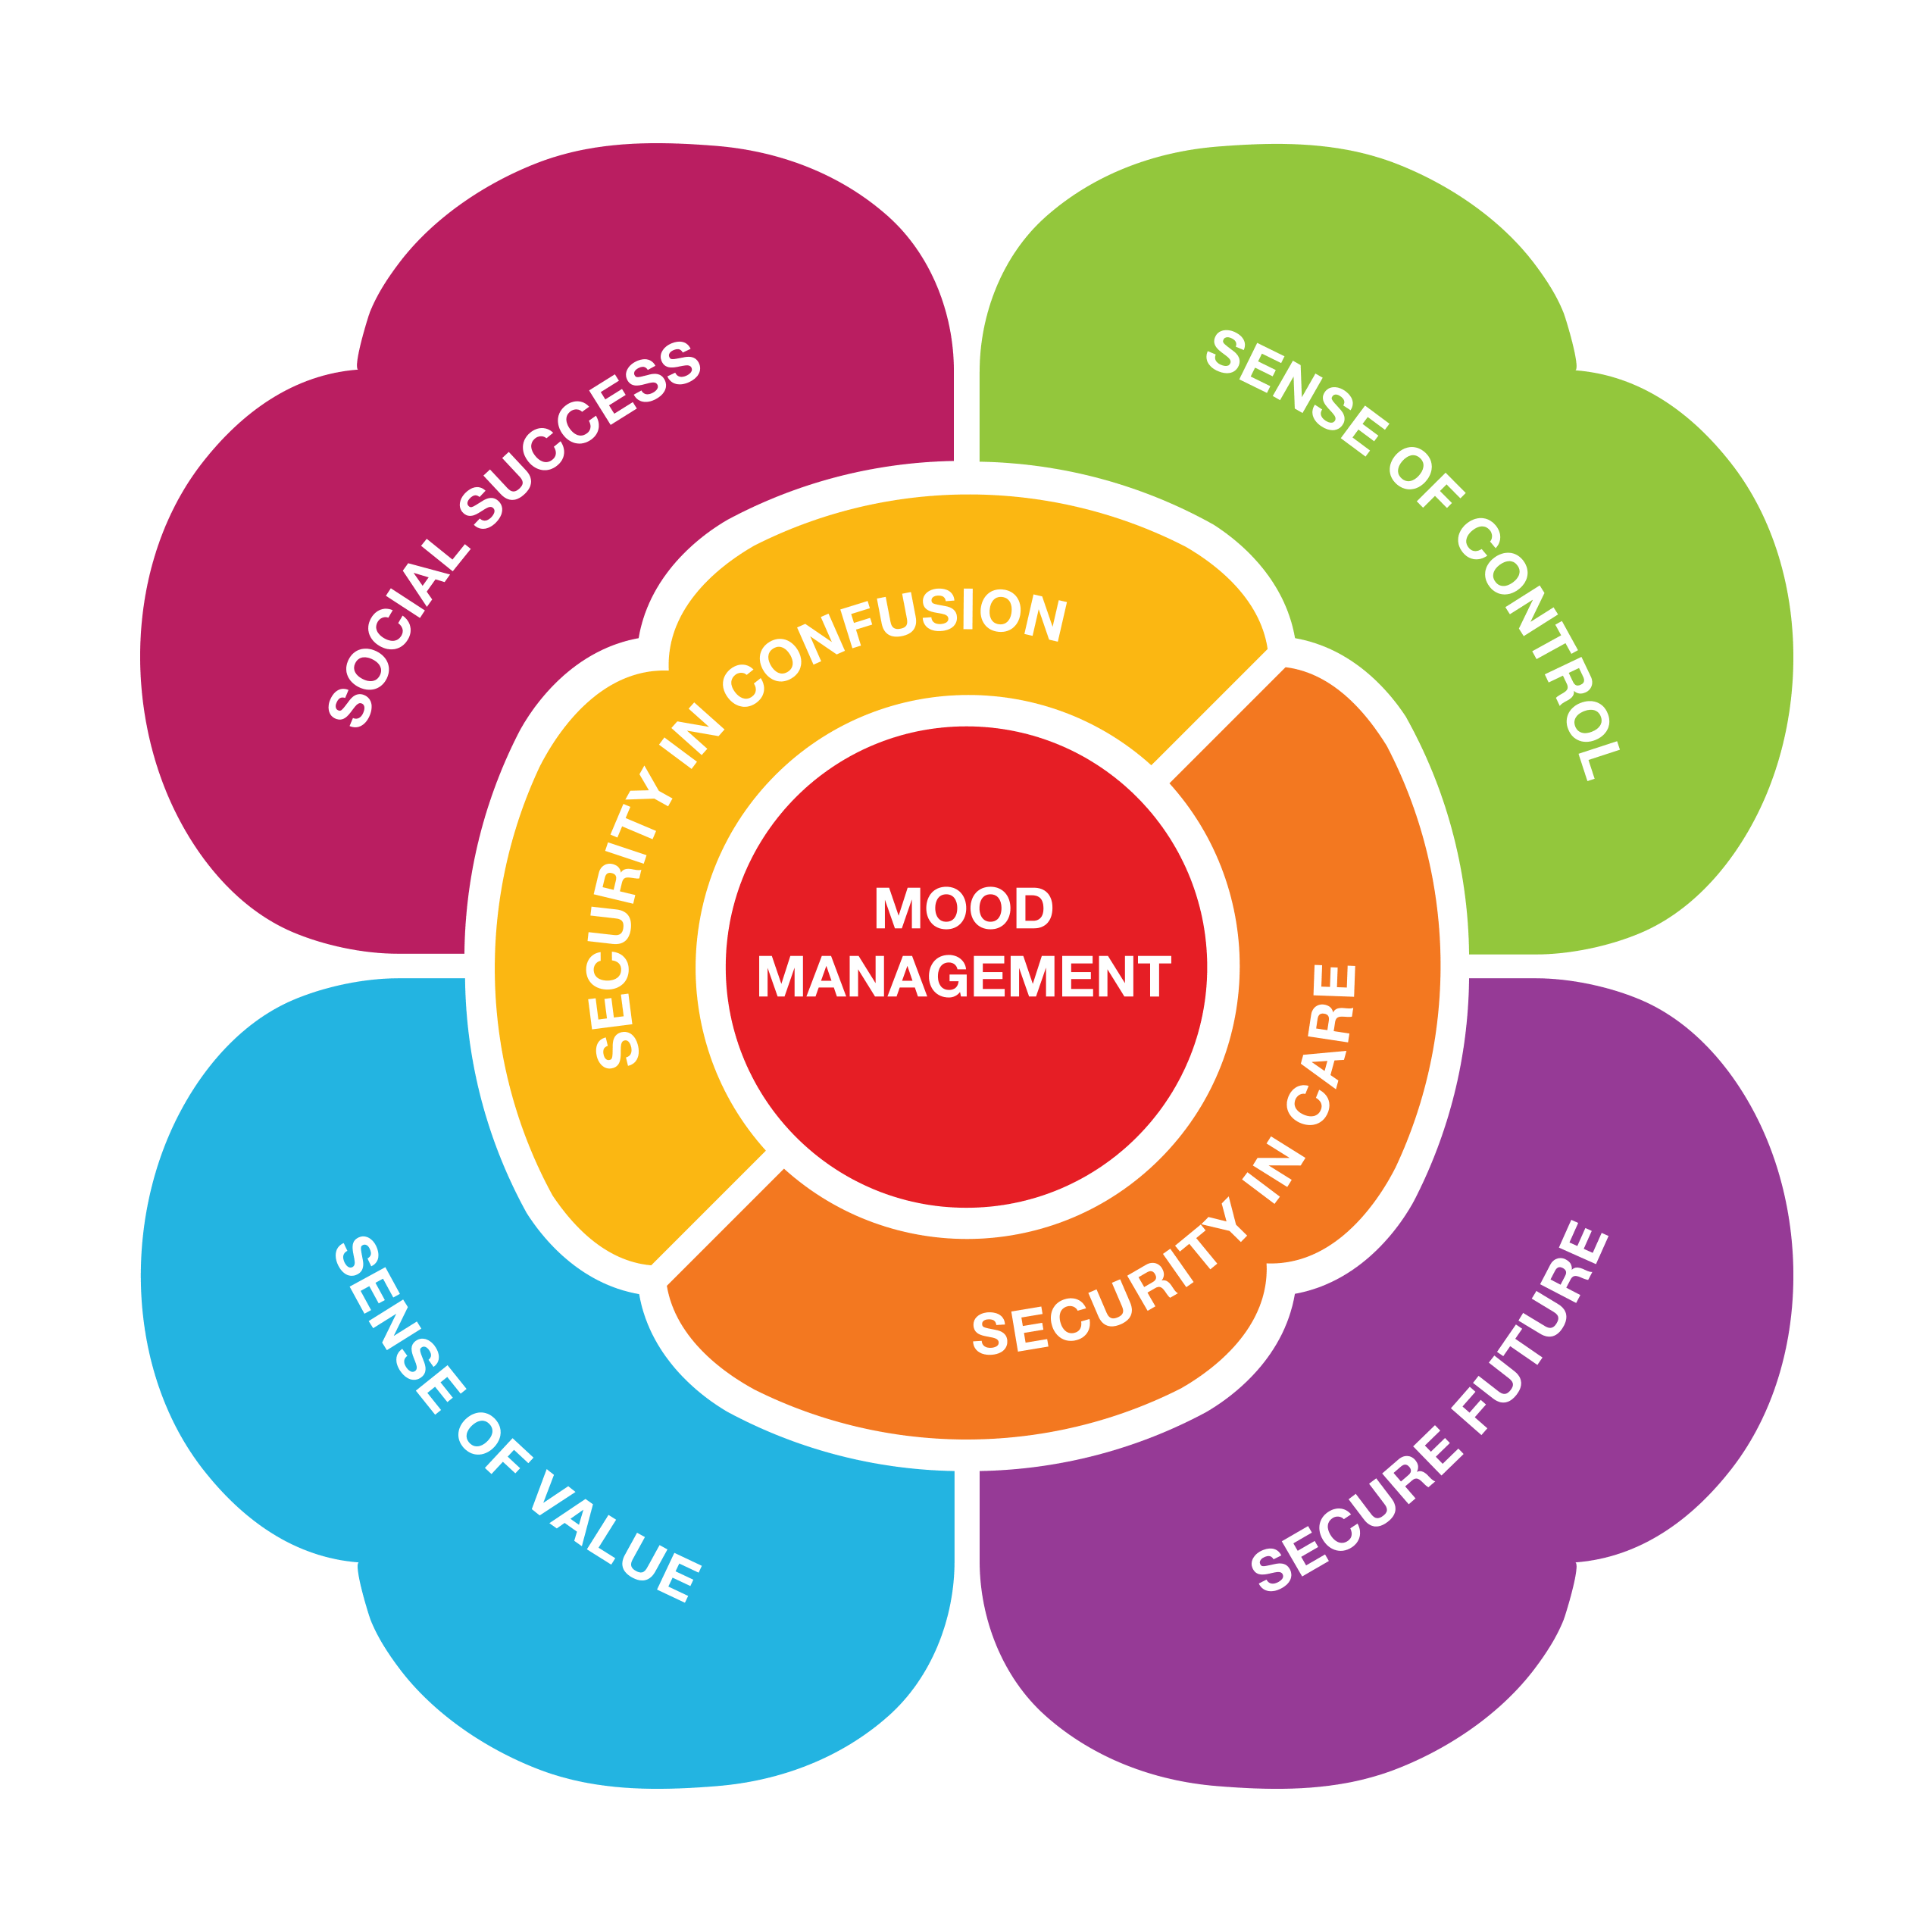 the DAWN Method includes 7 Tools: The 7 Tools of the DAWN Method: Mood Management, Security in Confusion, Security in Care, Social Success, Sense of Control, Sense of Value, Secure Future